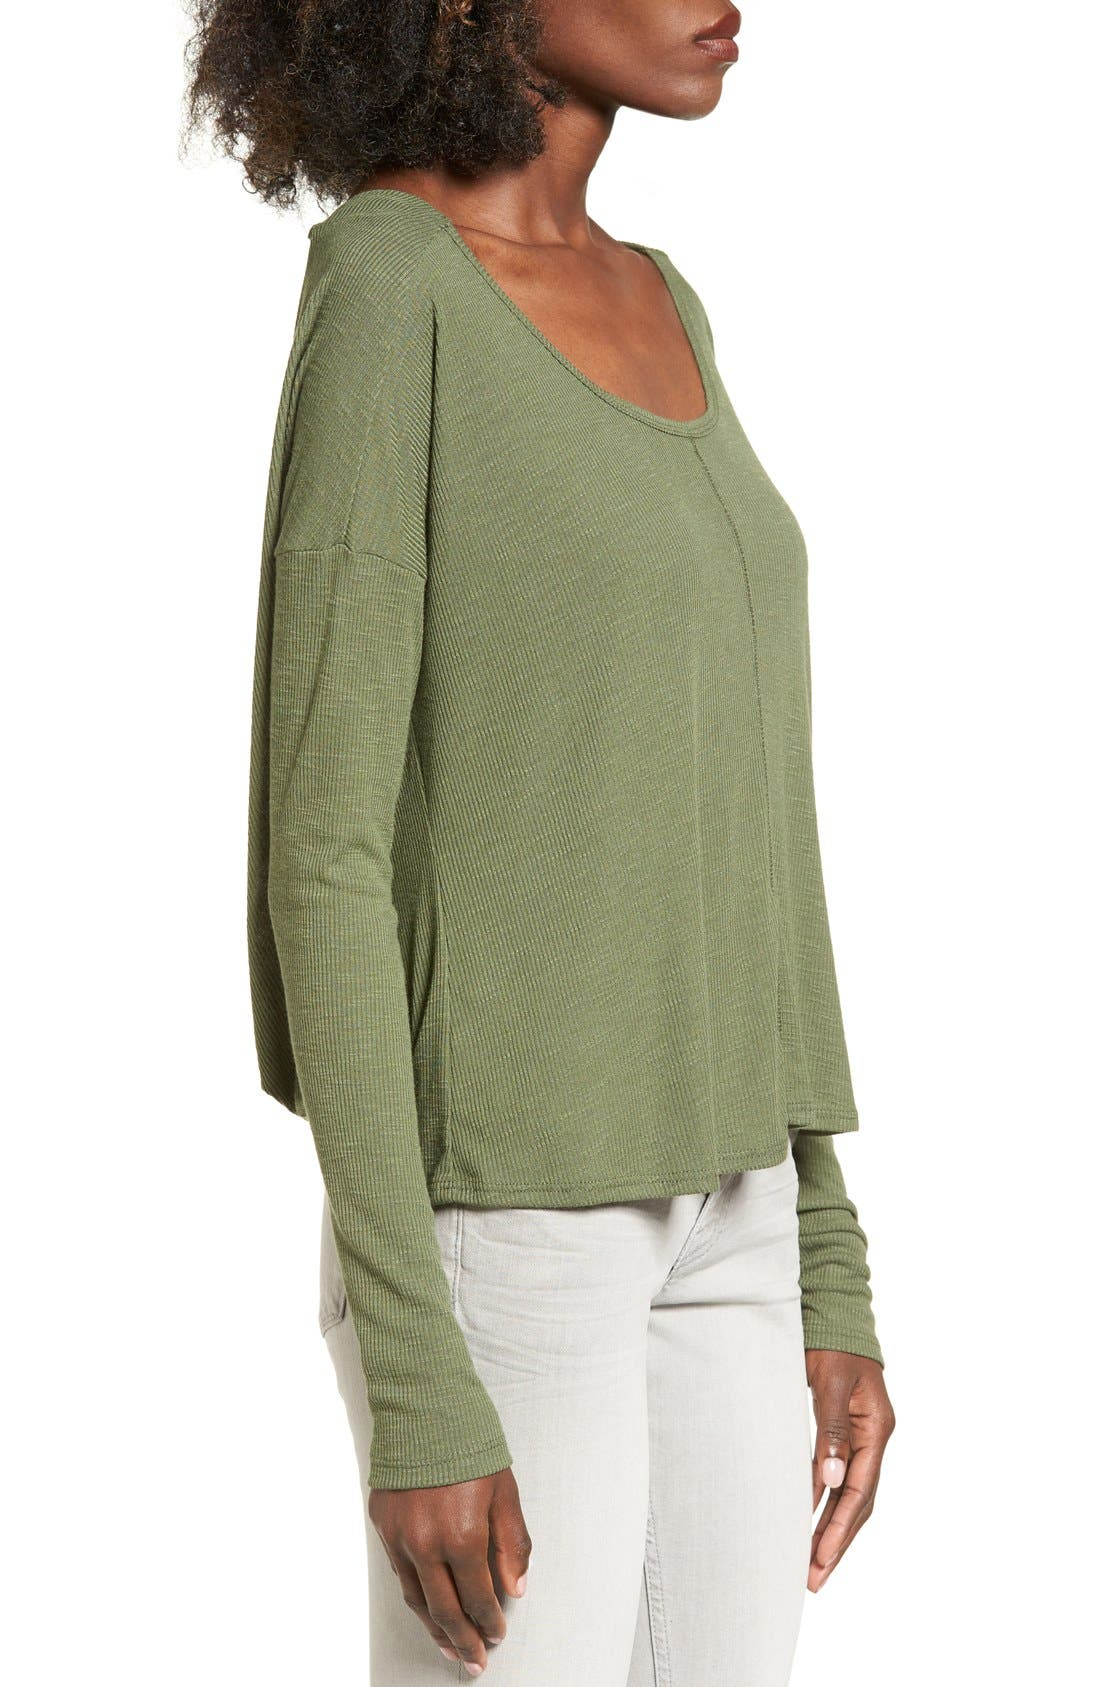 CHLOE & KATIE, Knotted Drape Back Tee, Alternate thumbnail 4, color, 300